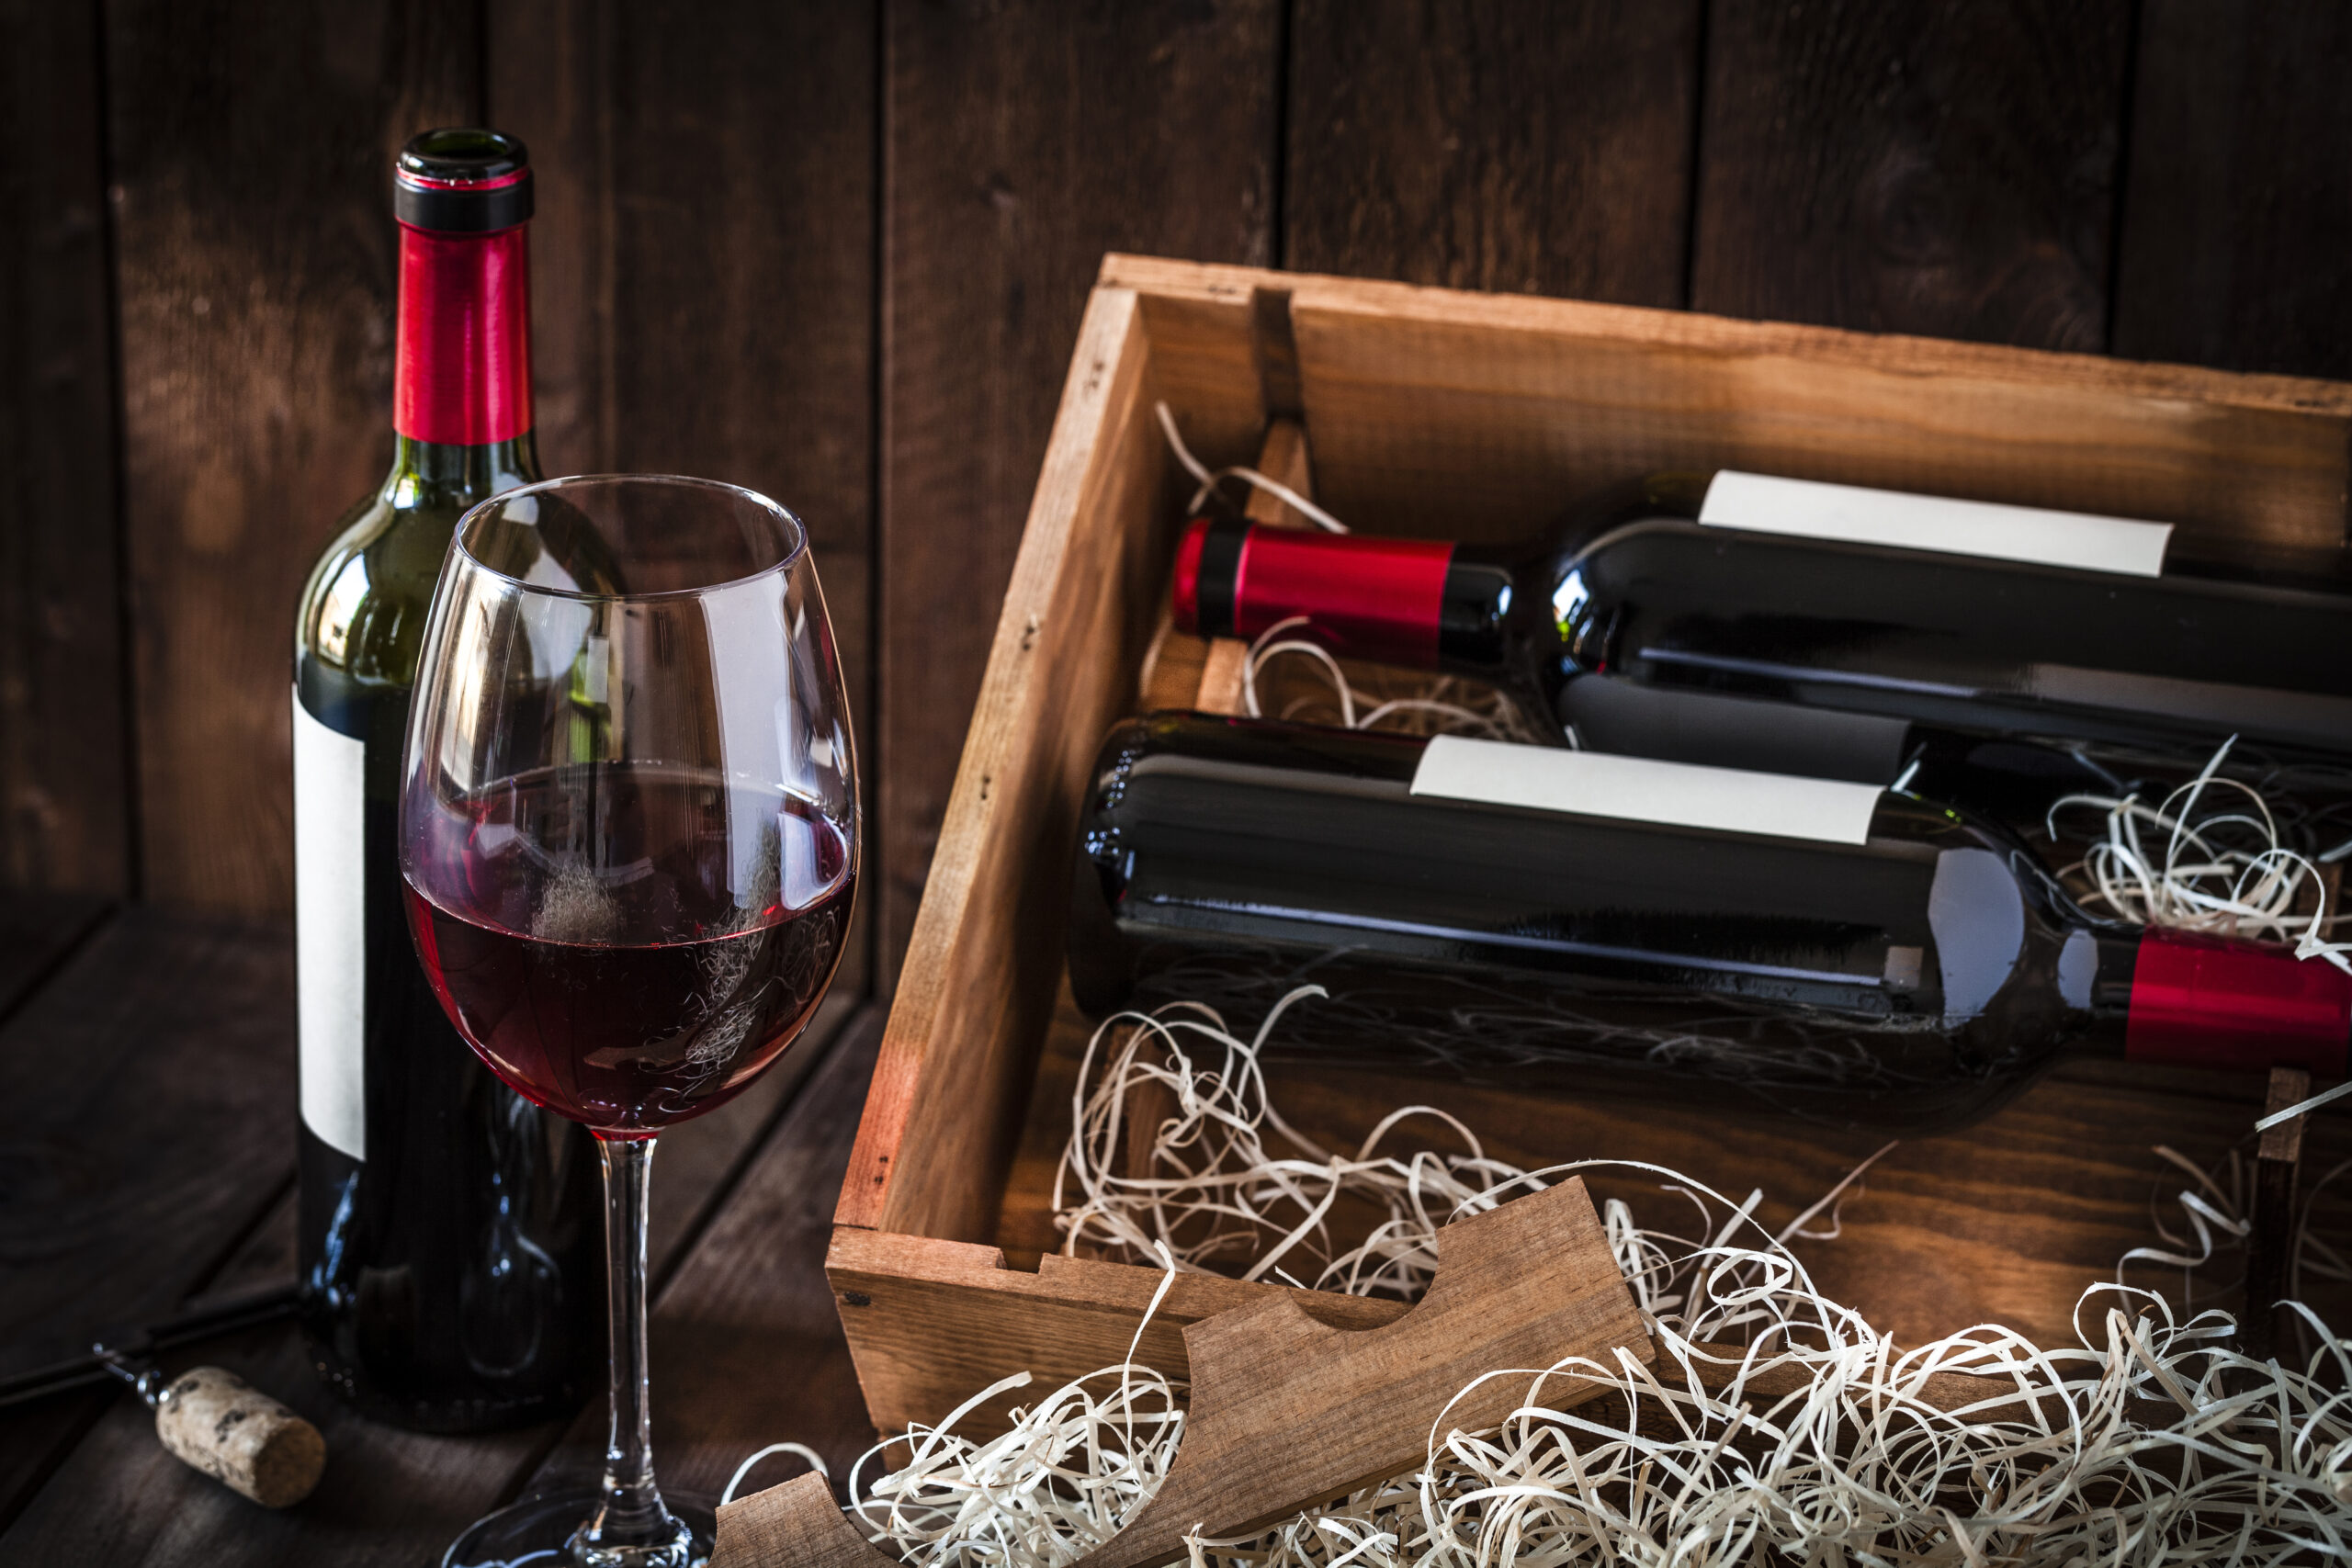 Front view of a wooden box with two wine bottles inside it and a third bottle out the box with a wineglass in front of it. A corkscrew with a cork is in besid the wineglass. Predominant color is brown. Low key DSRL studio photo taken with Canon EOS 5D Mk II and Canon EF 100mm f/2.8L Macro IS USM